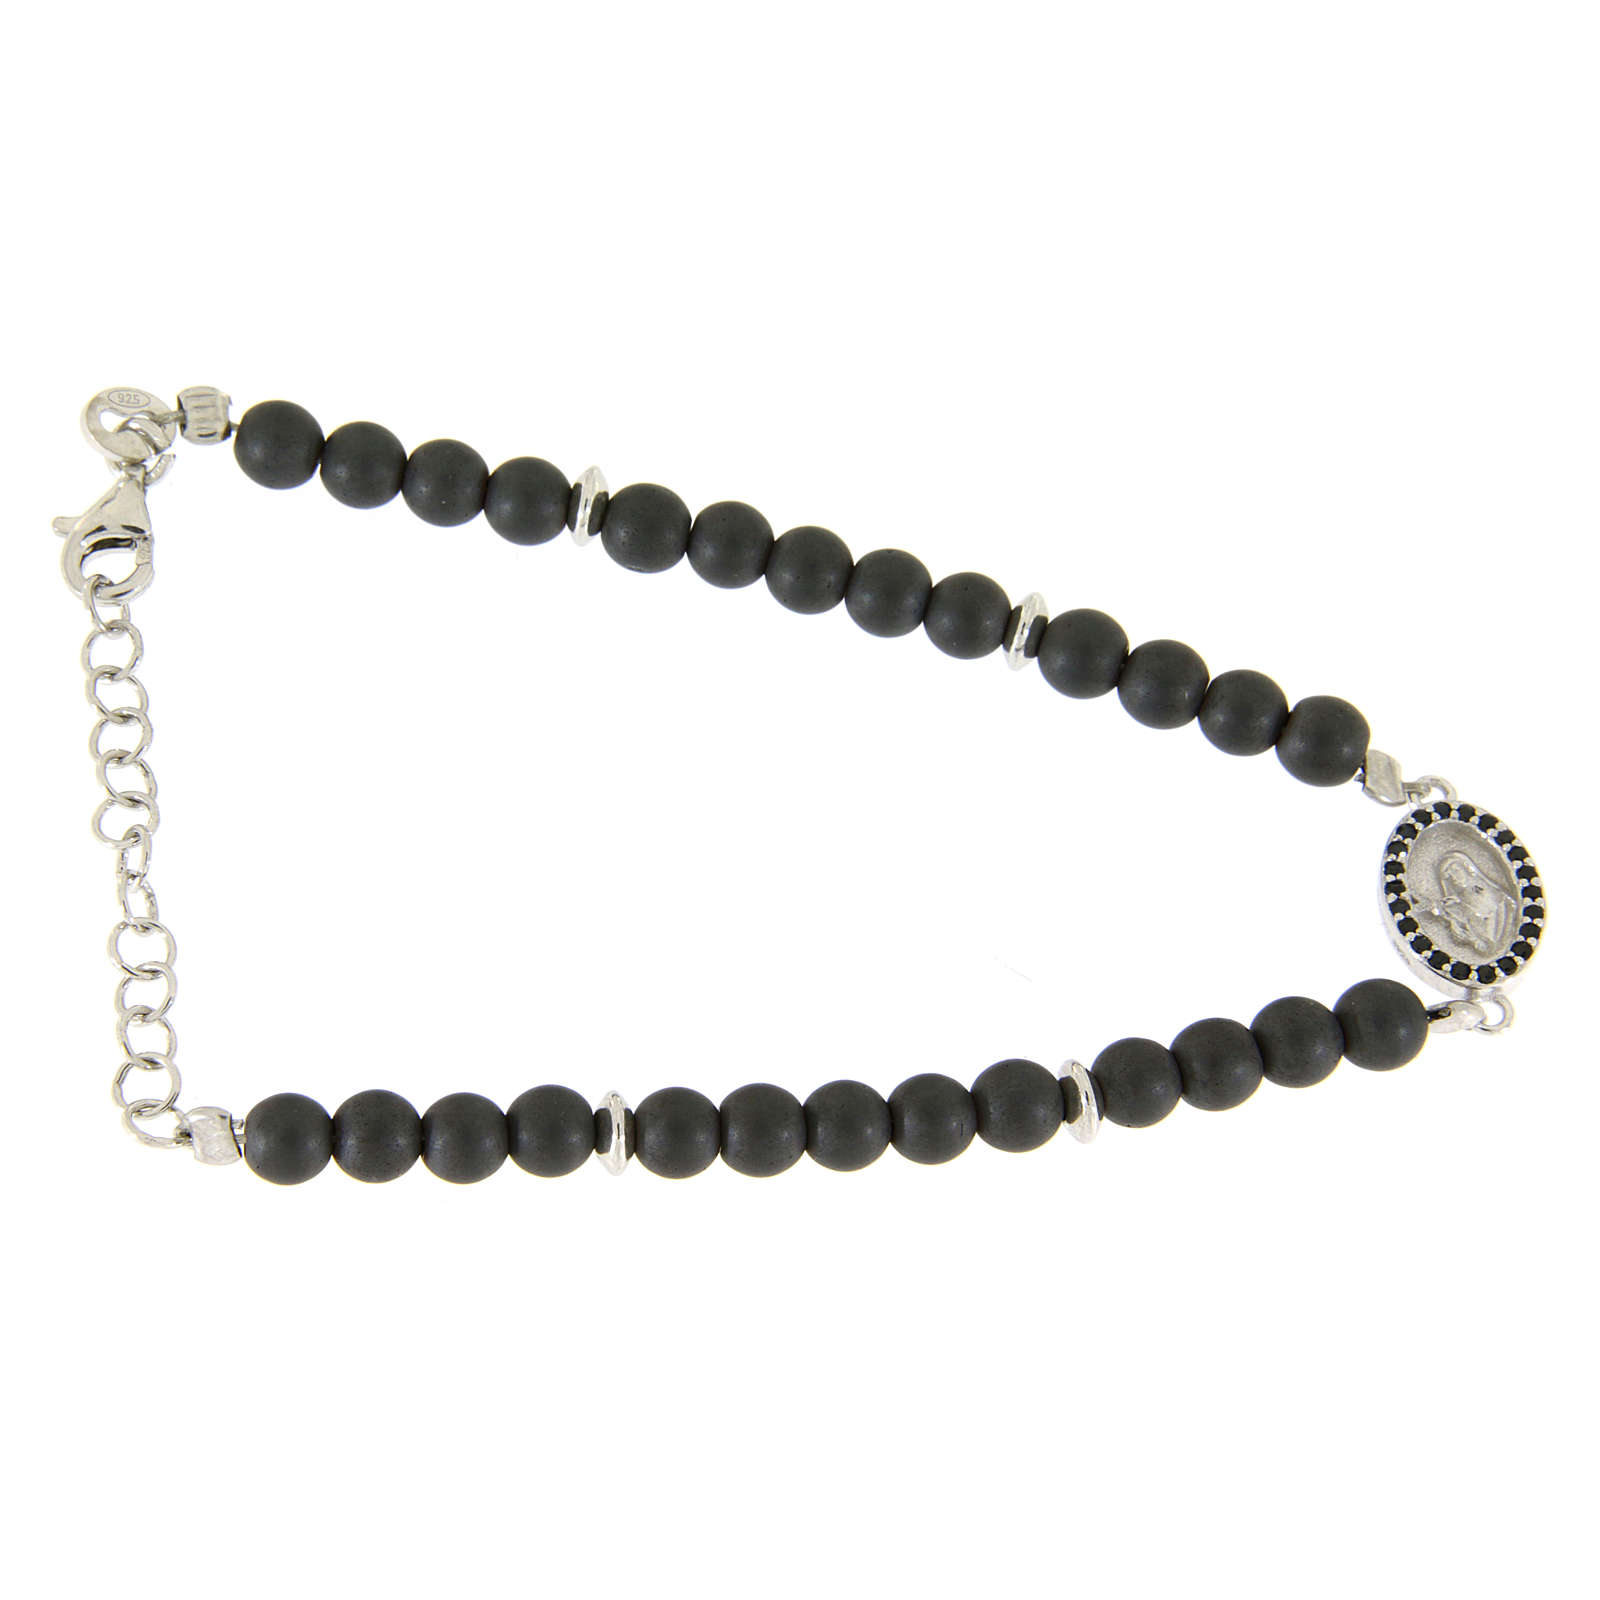 Bracelet in 925 sterling silver with 4,5 hematite balls and a black zircon medalet 4